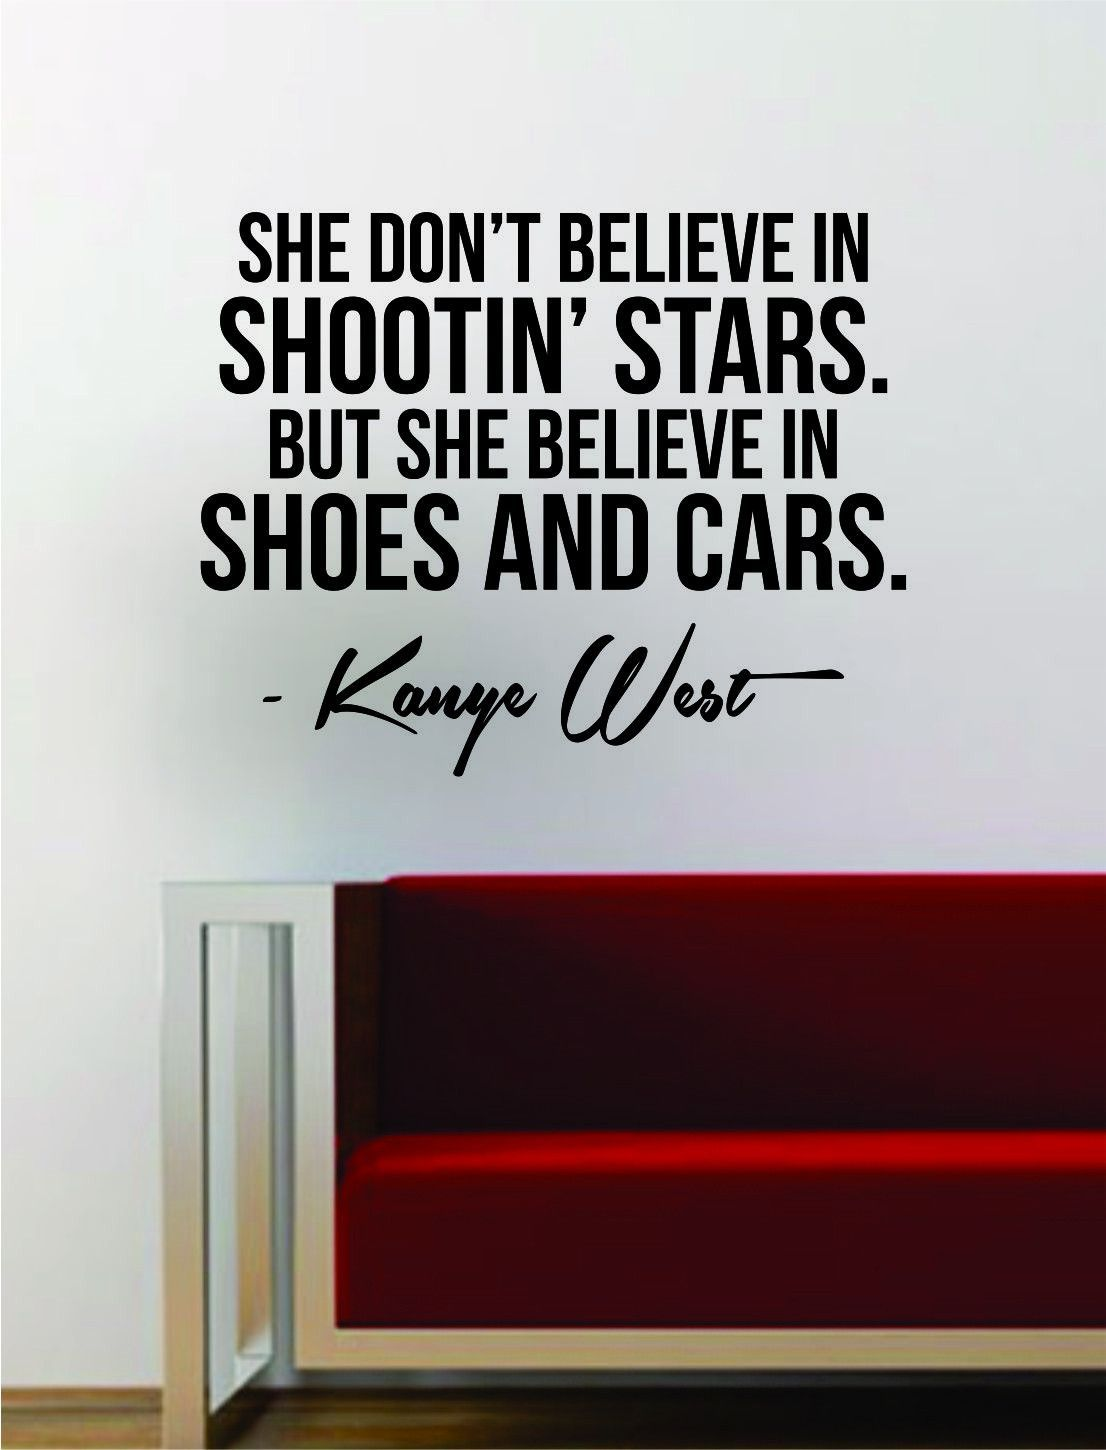 Wall Vinyl Art kanye west shoes and cars quote decal sticker wall vinyl art music